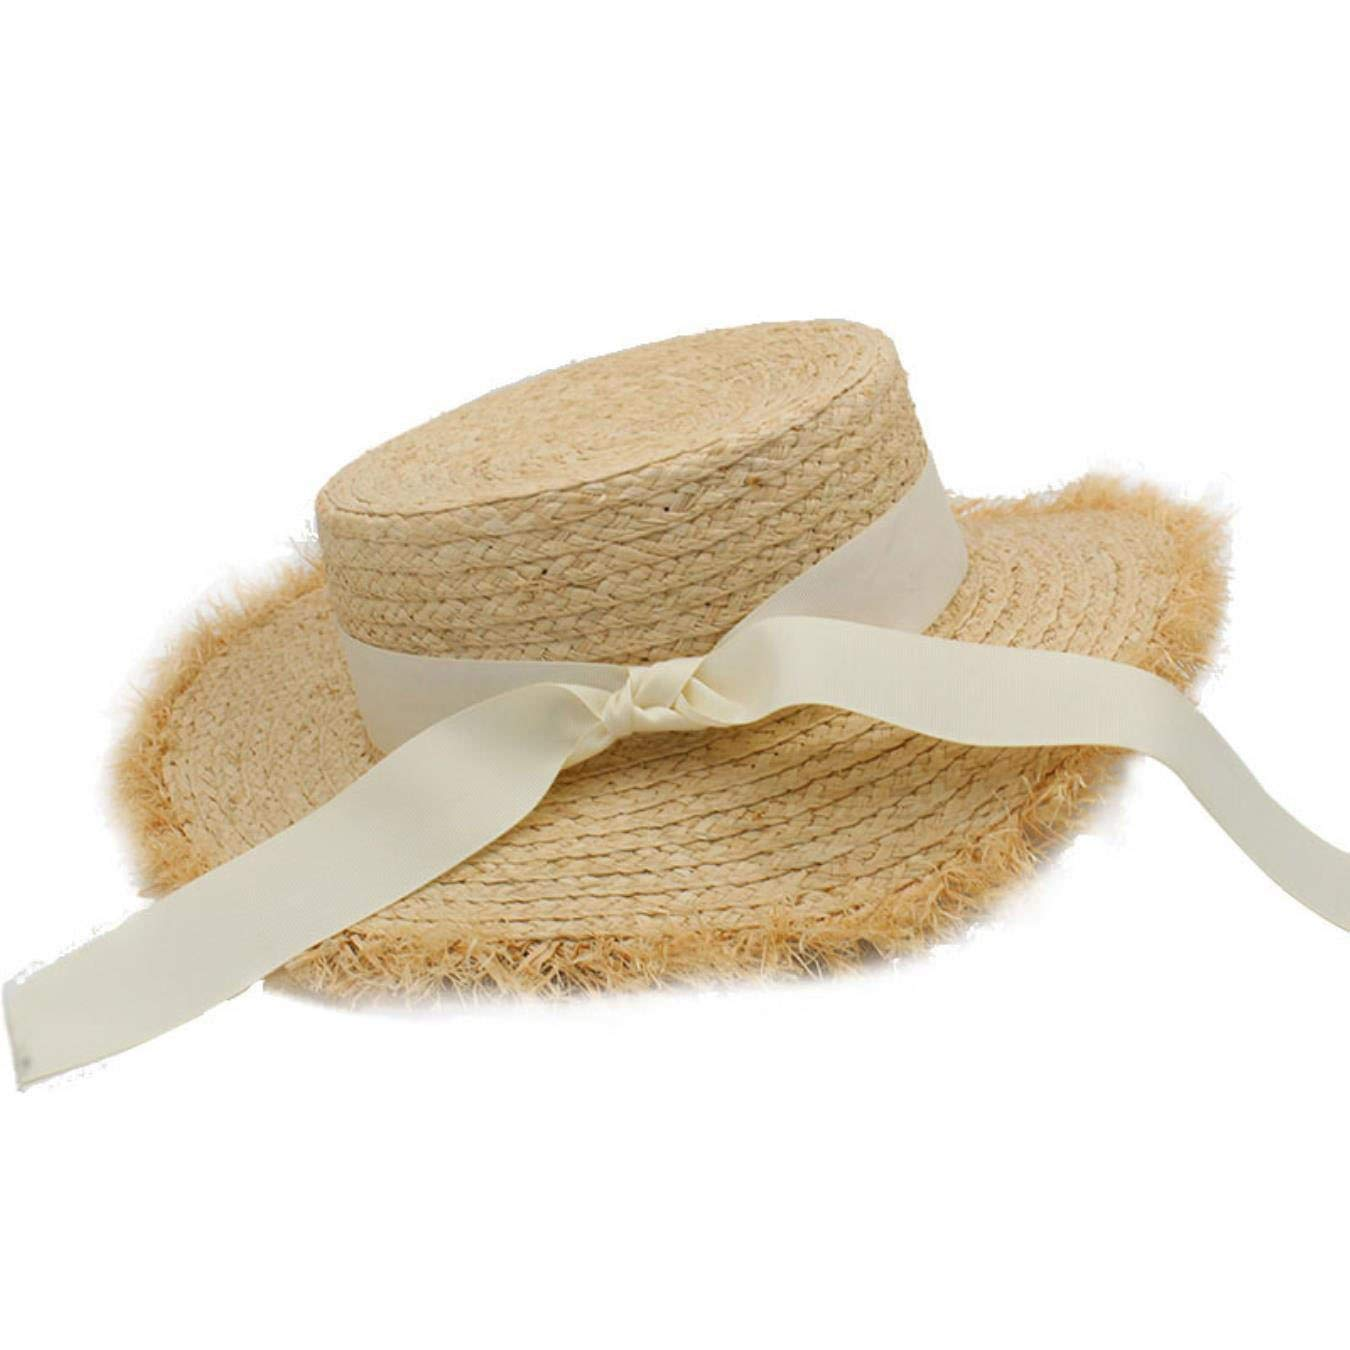 Womens Summer Adult Solid Casual Straw Sun Beach Hat Summer Hats for Women Boater Raffia Hat Bow